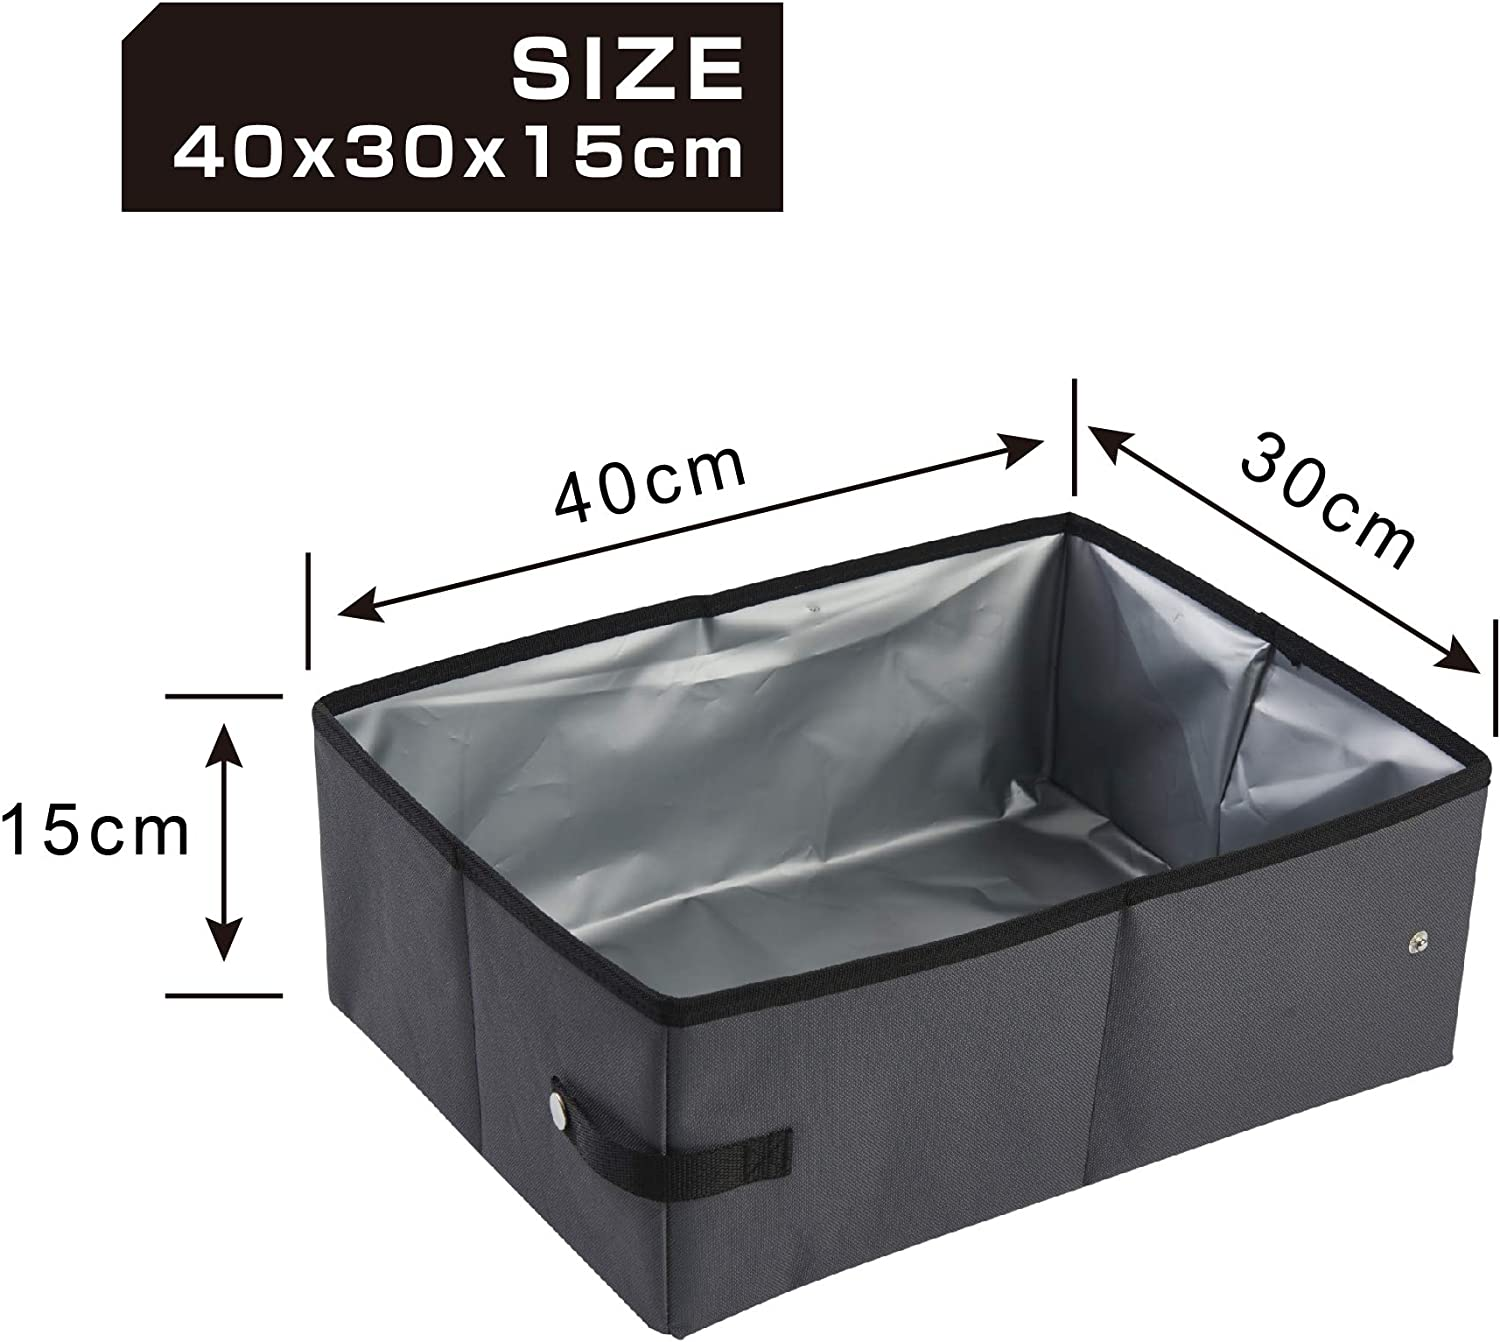 Grey EDENPETZ Collapsible Portable Cat Litter Box,Free Collapsible Pet Bowl Included